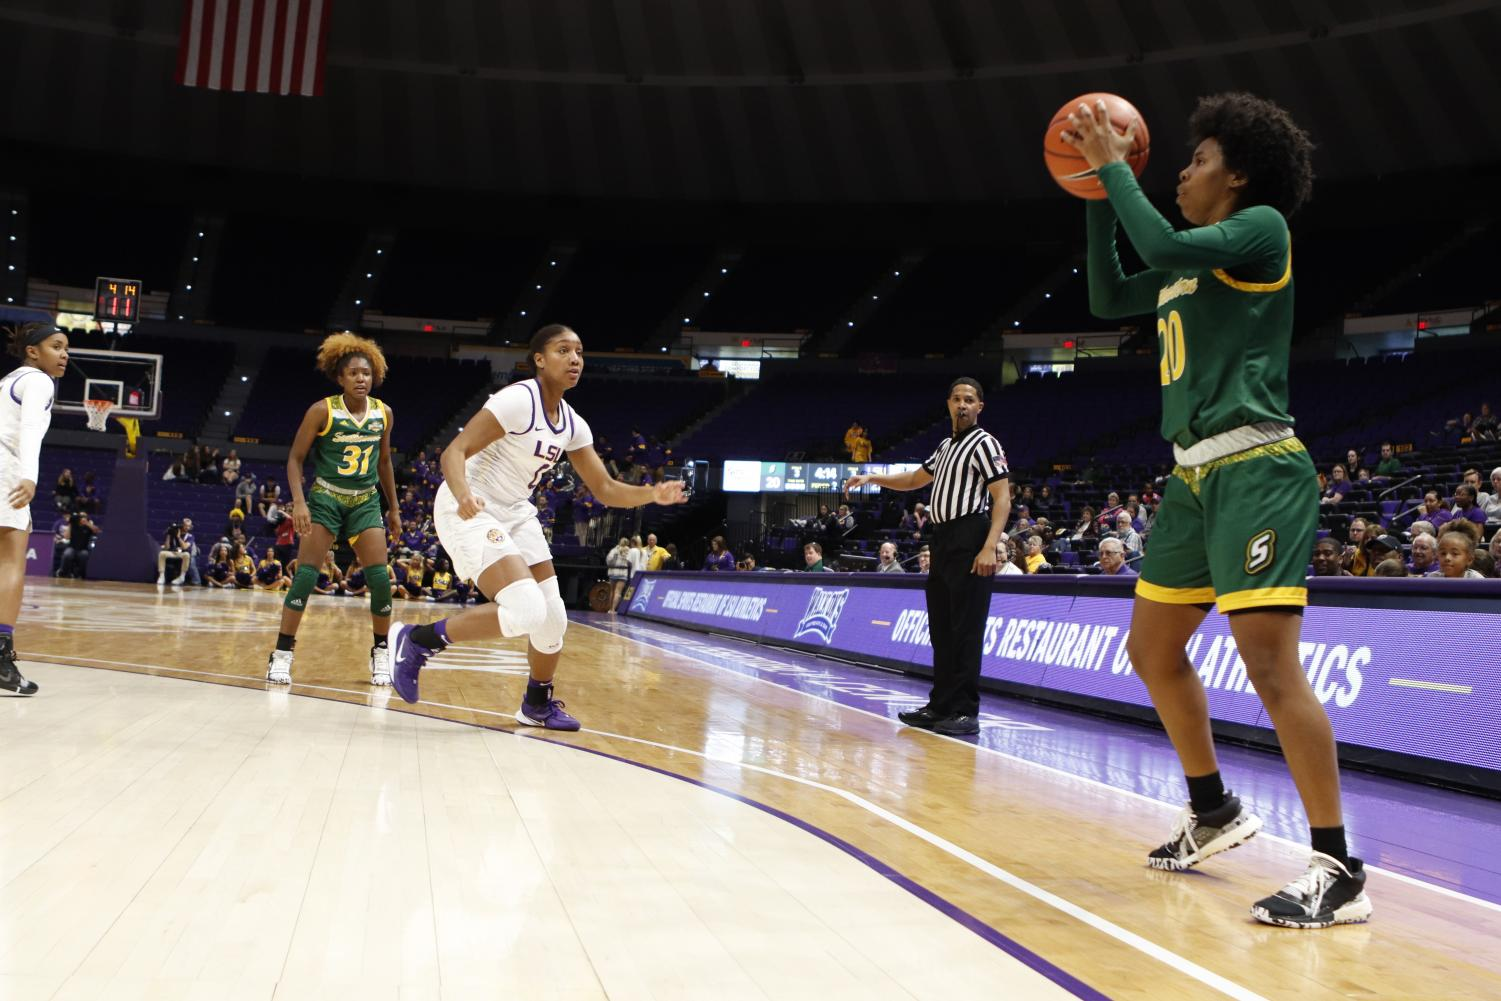 Celica Sterling, a senior guard, prepares for a shot in the first half. The university scored 20 of their 52 points in the first two quarters.